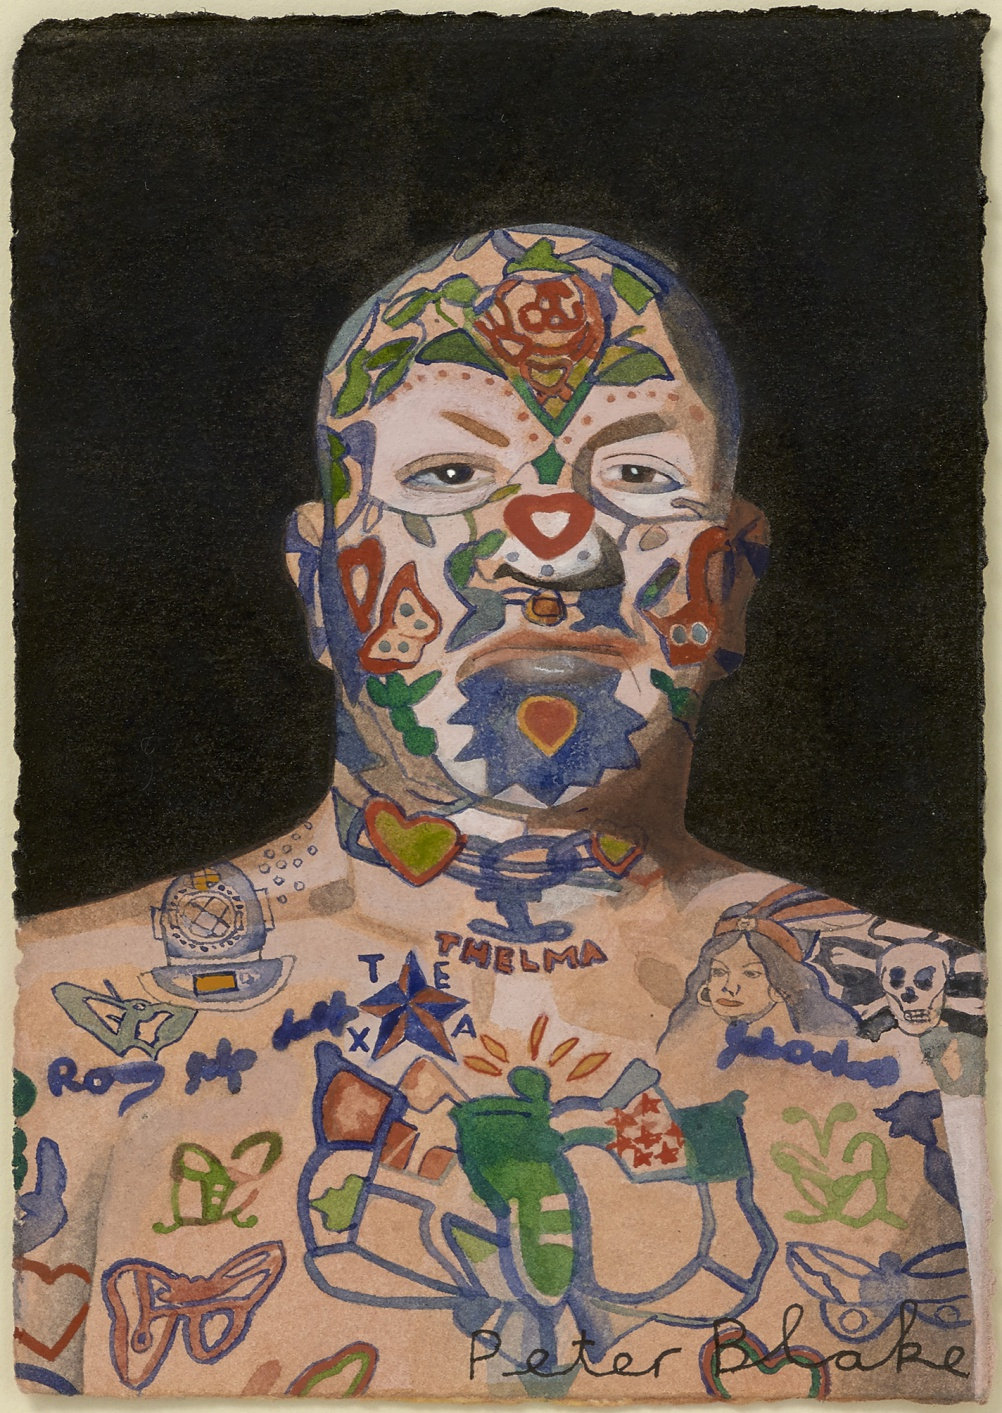 Peter Blake, Tattooed Man 5, 2015, watercolour